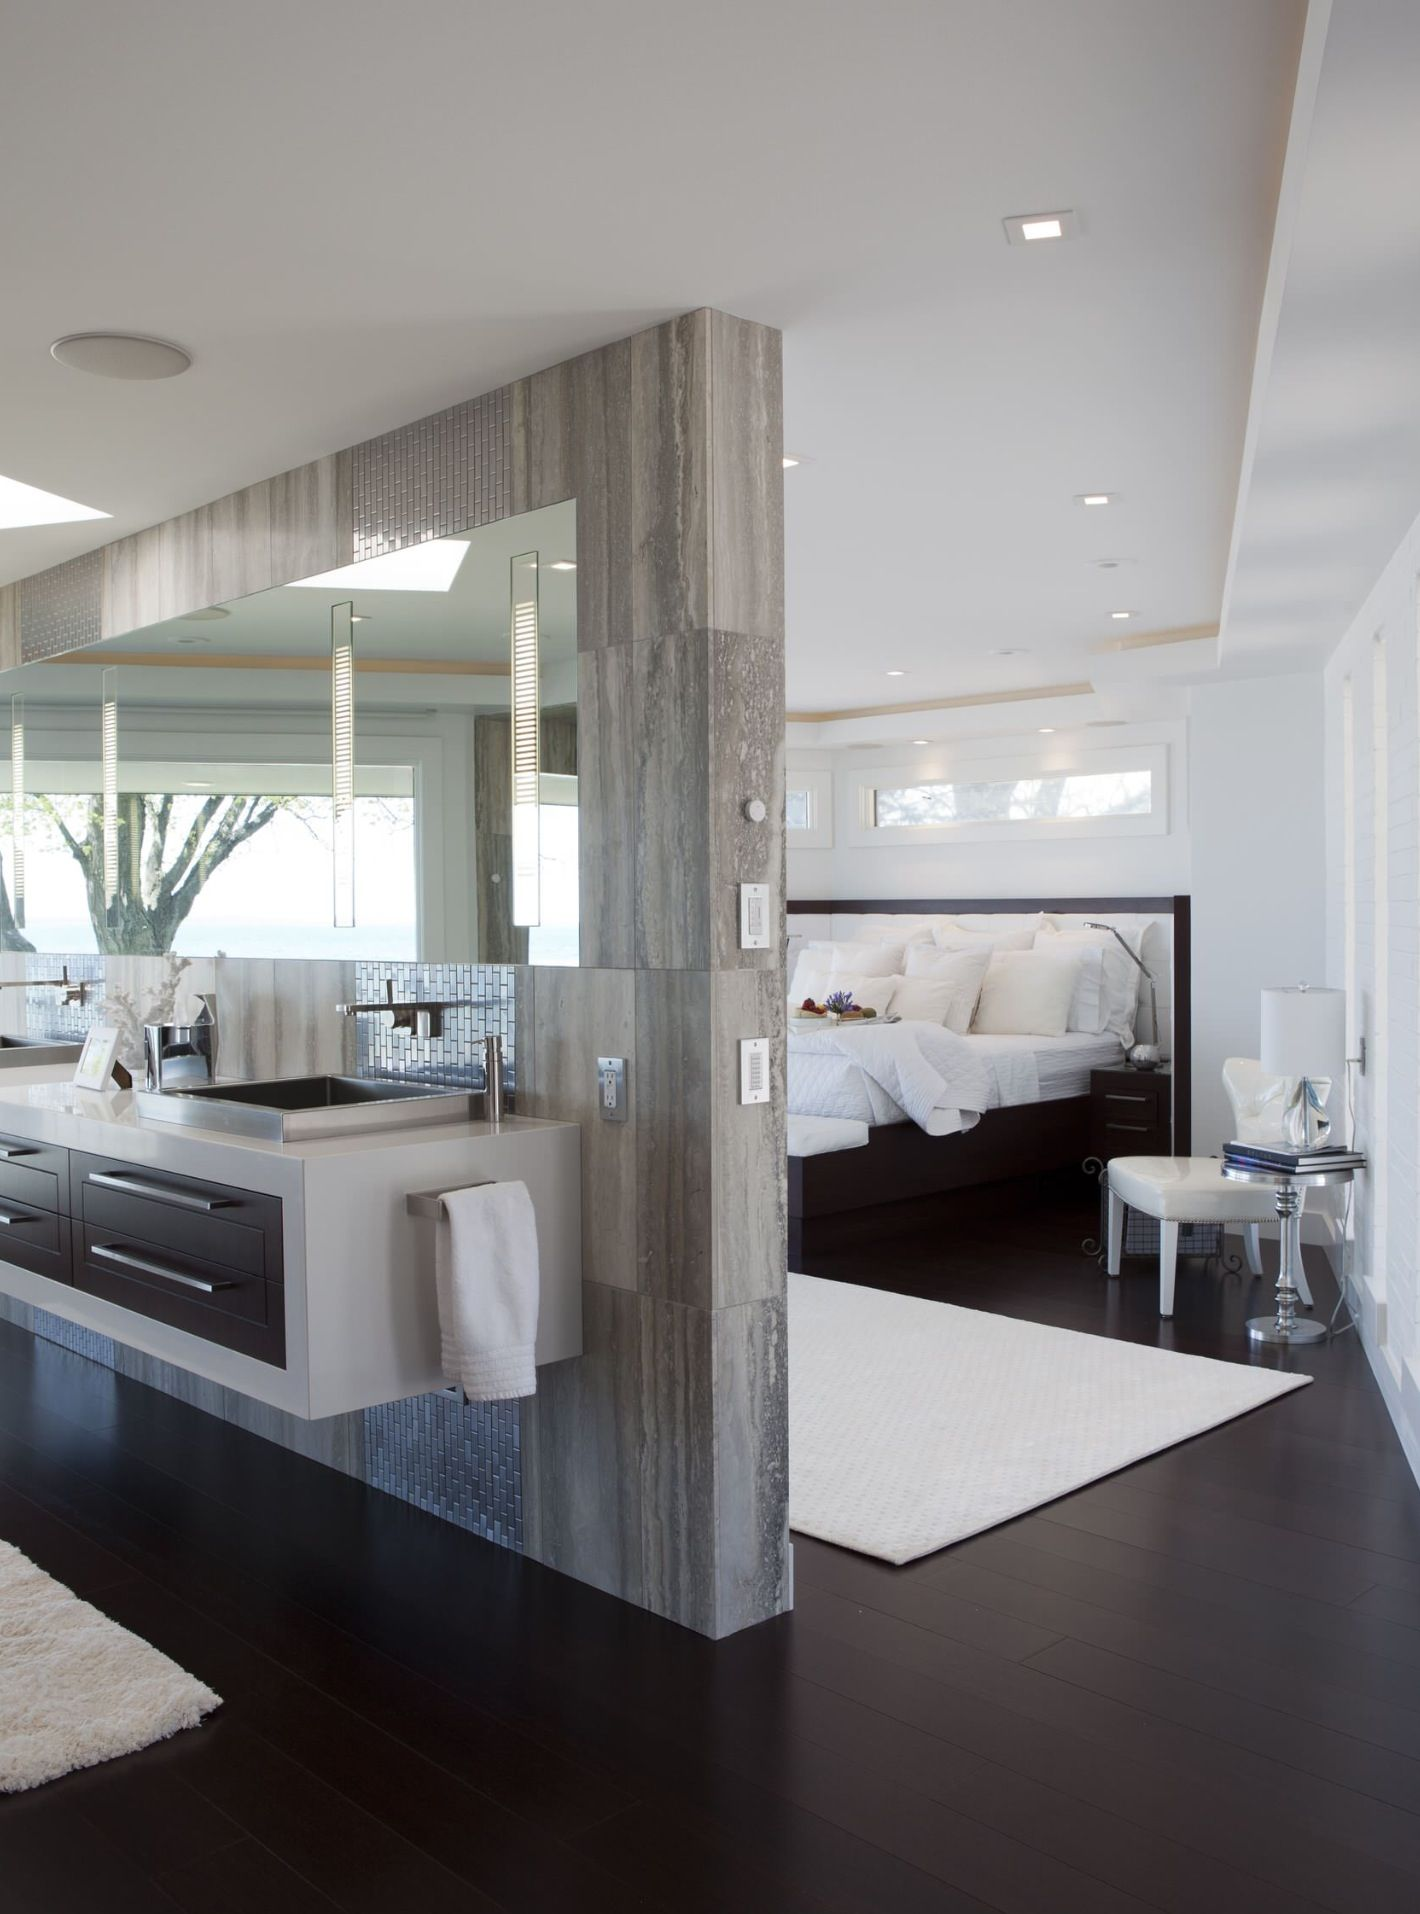 25 Open Concept Modern Floor Plans   HONEY I M HOME   Pinterest     Open wall to the master bedroom  Frosted glass looking into closets